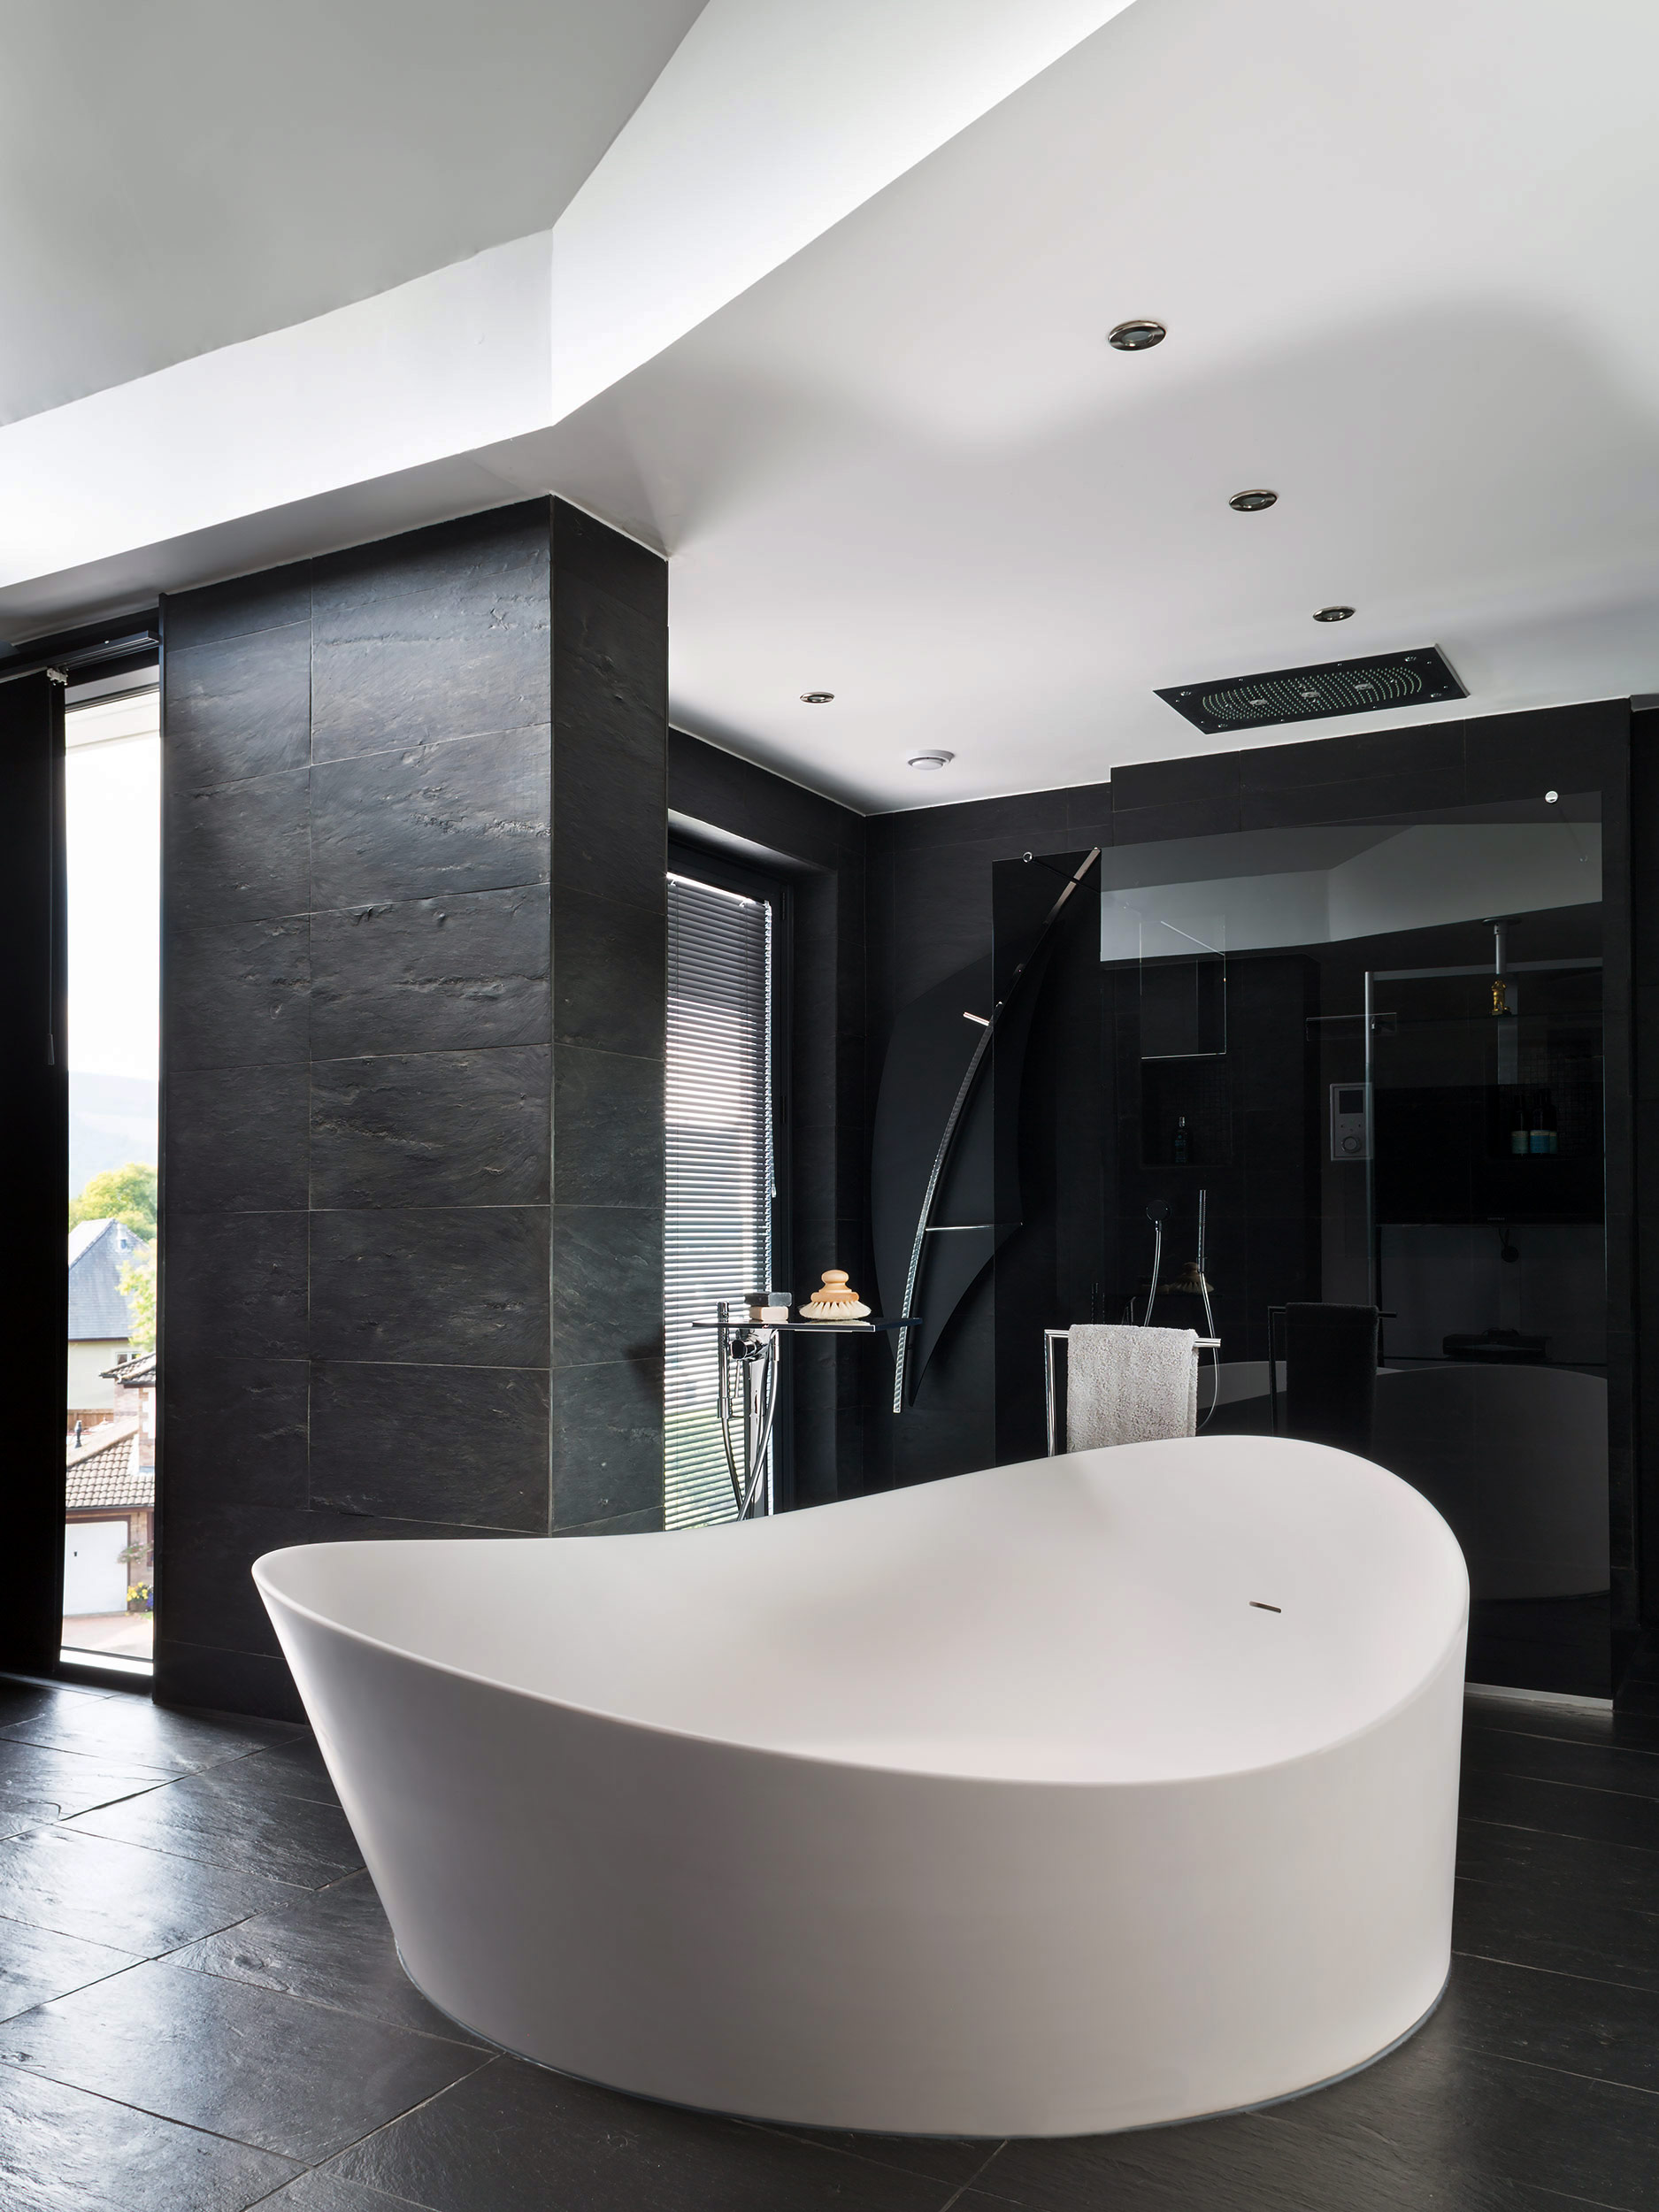 West One Bathrooms Case Studies Cardiff House 1a